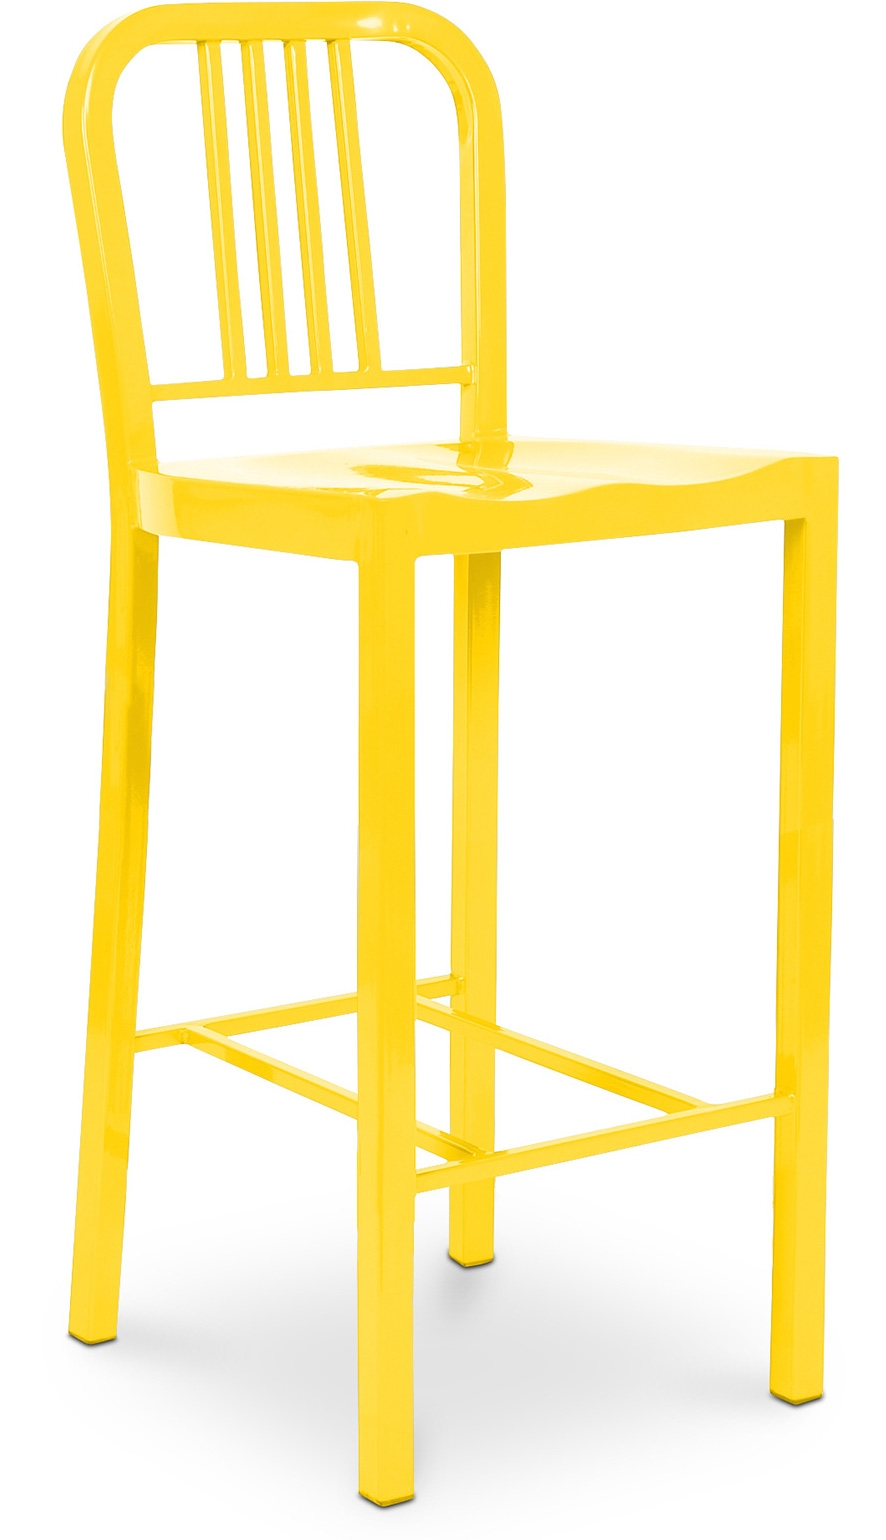 tabouret m tal jaune navy h 75 cm. Black Bedroom Furniture Sets. Home Design Ideas